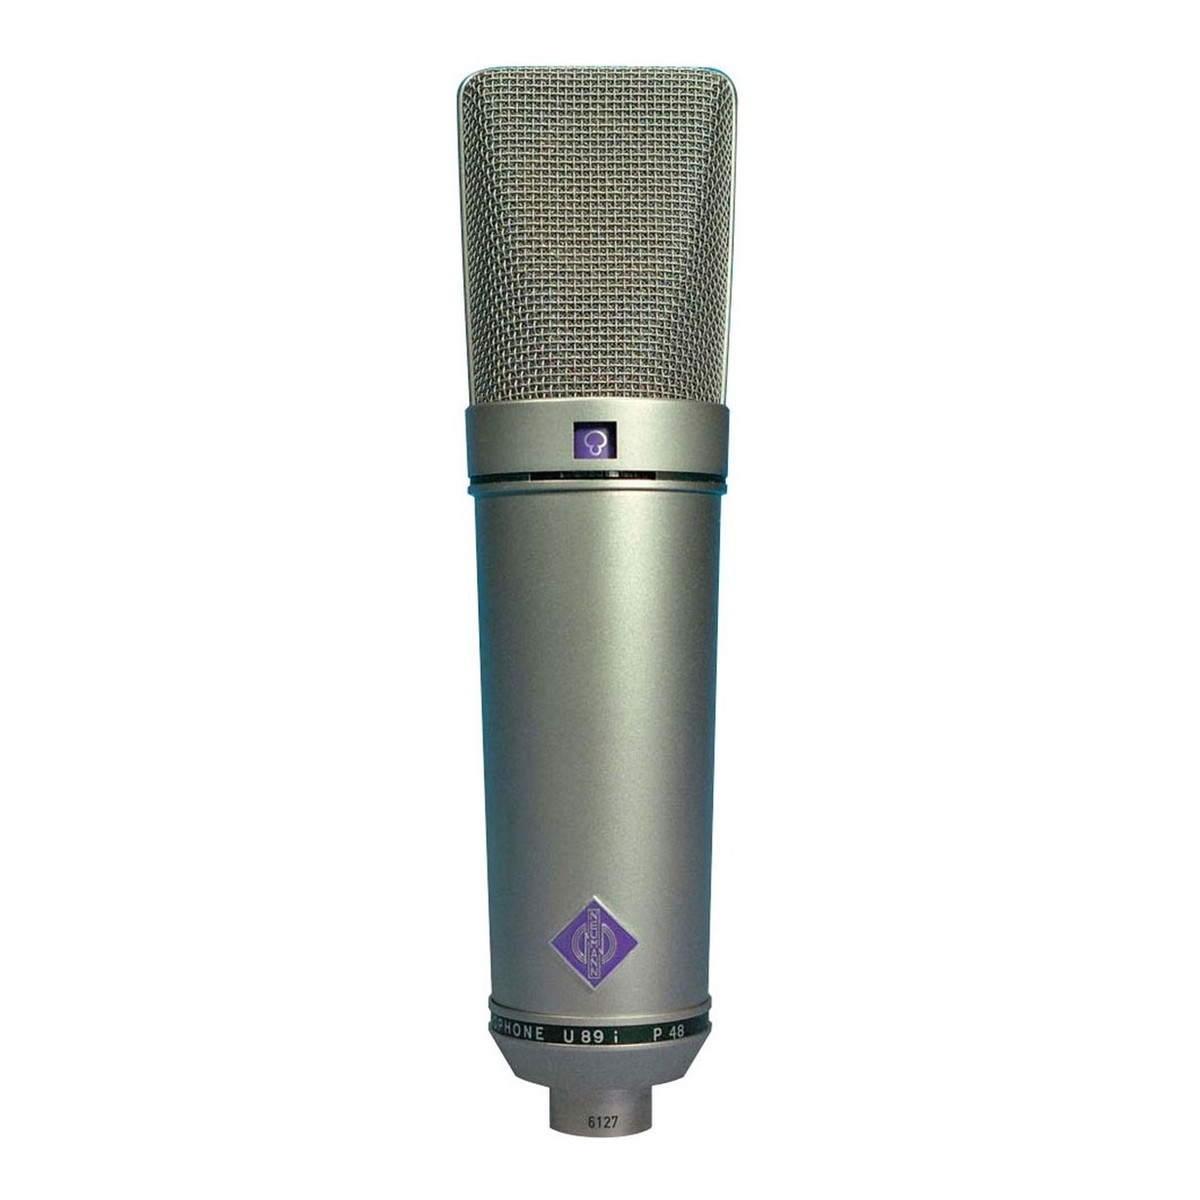 Neumann U 89 I Studio Microphone Nickel